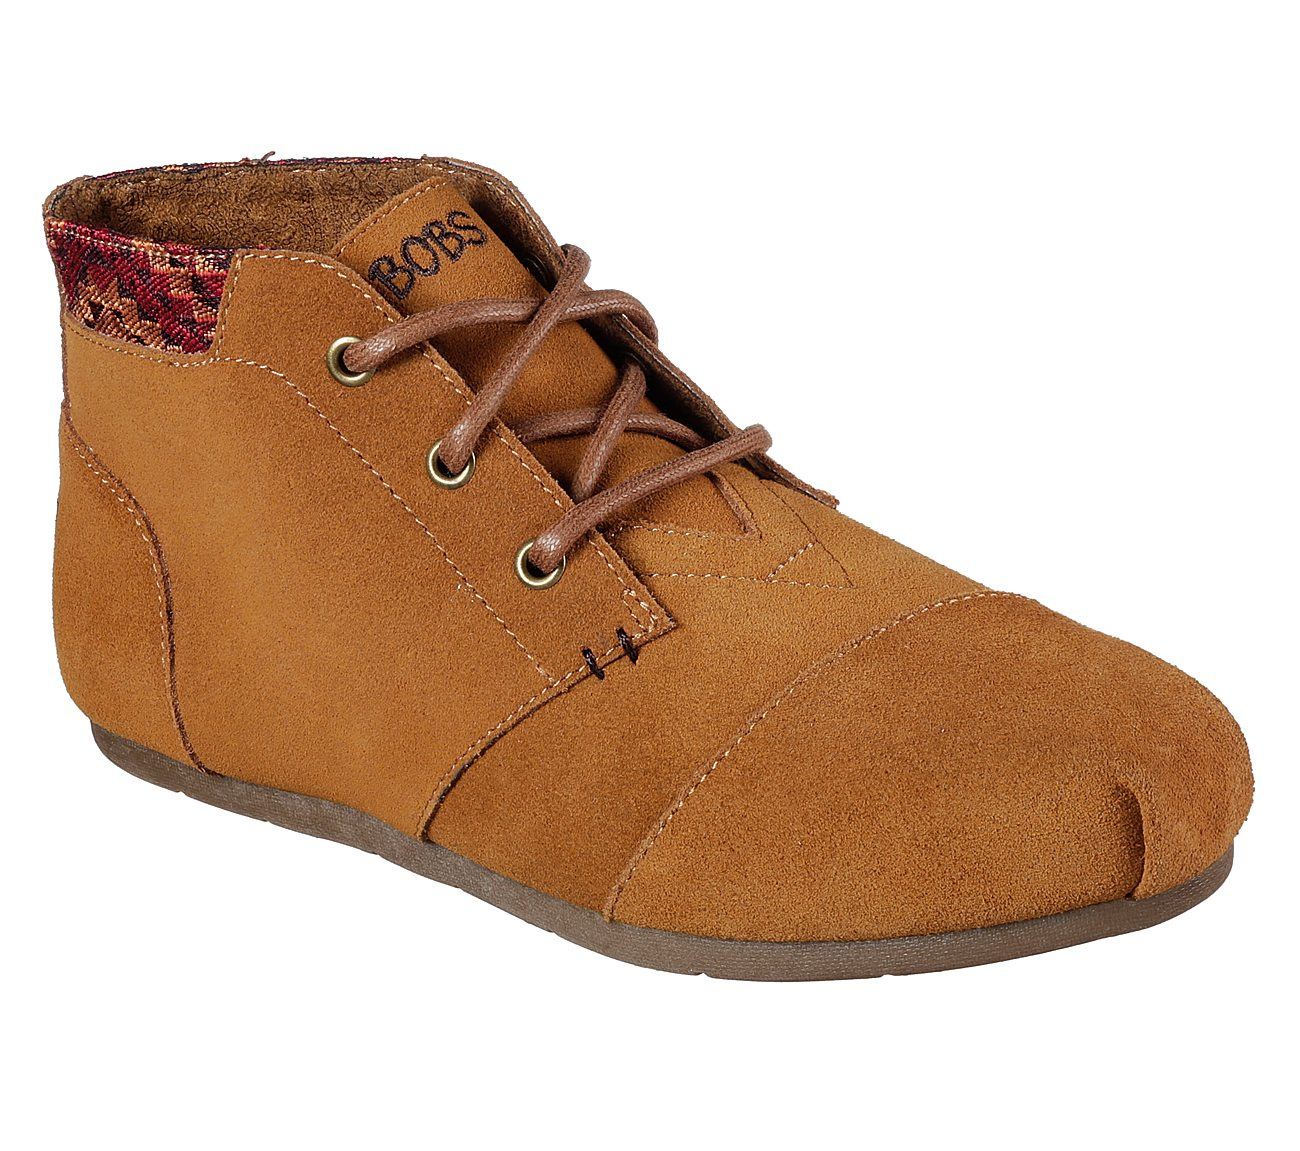 Rustic Sole BOBS Shoes Only $32.00